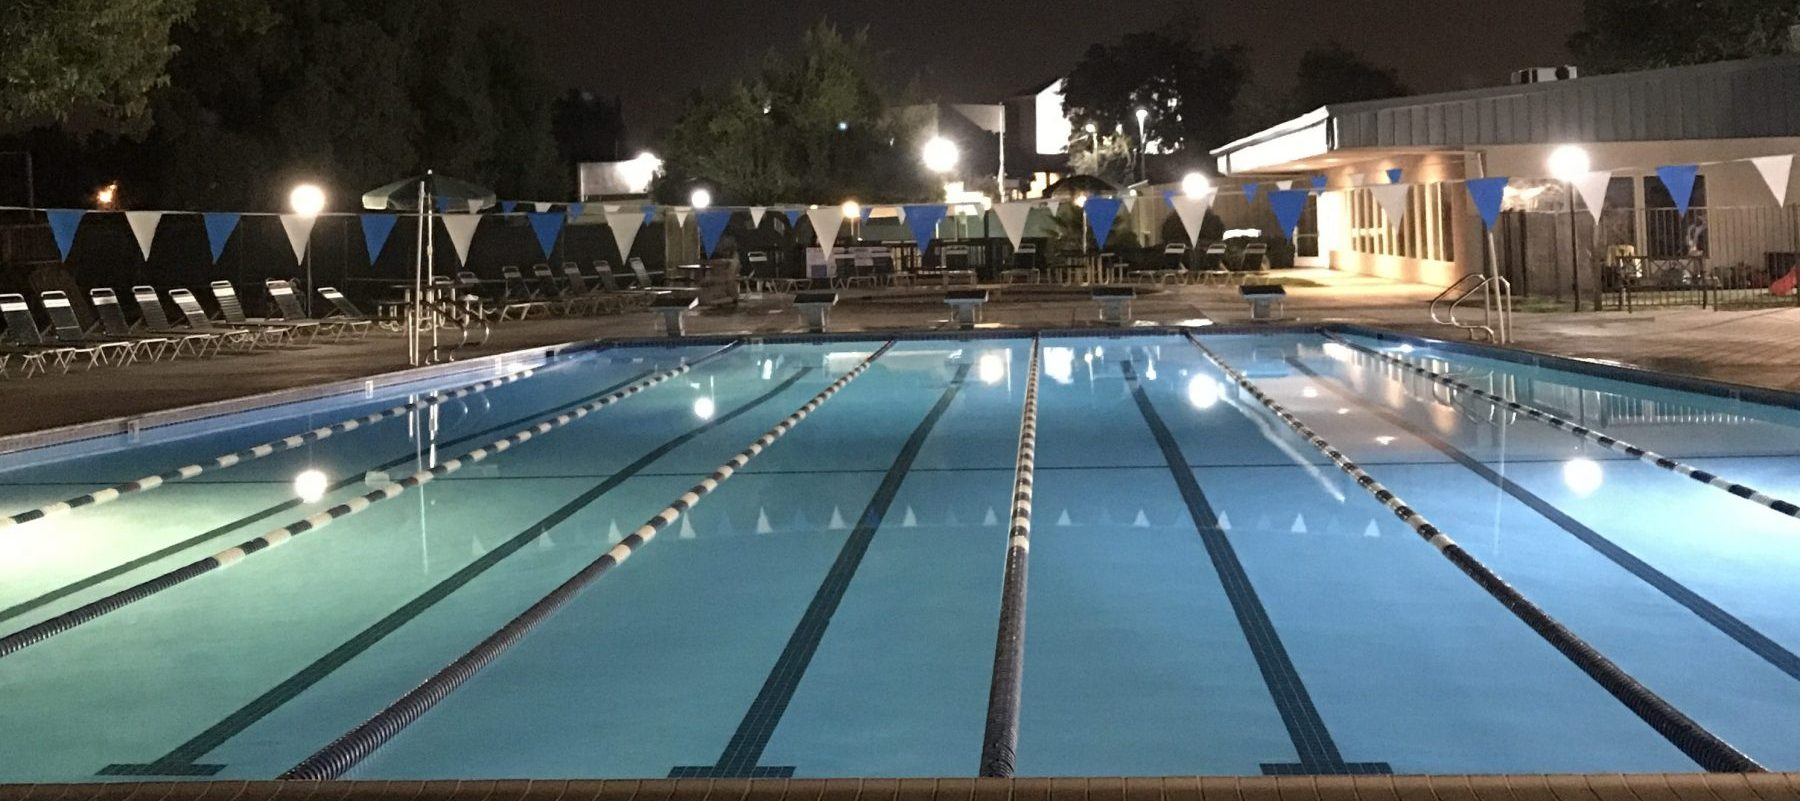 Del Norte pool at night